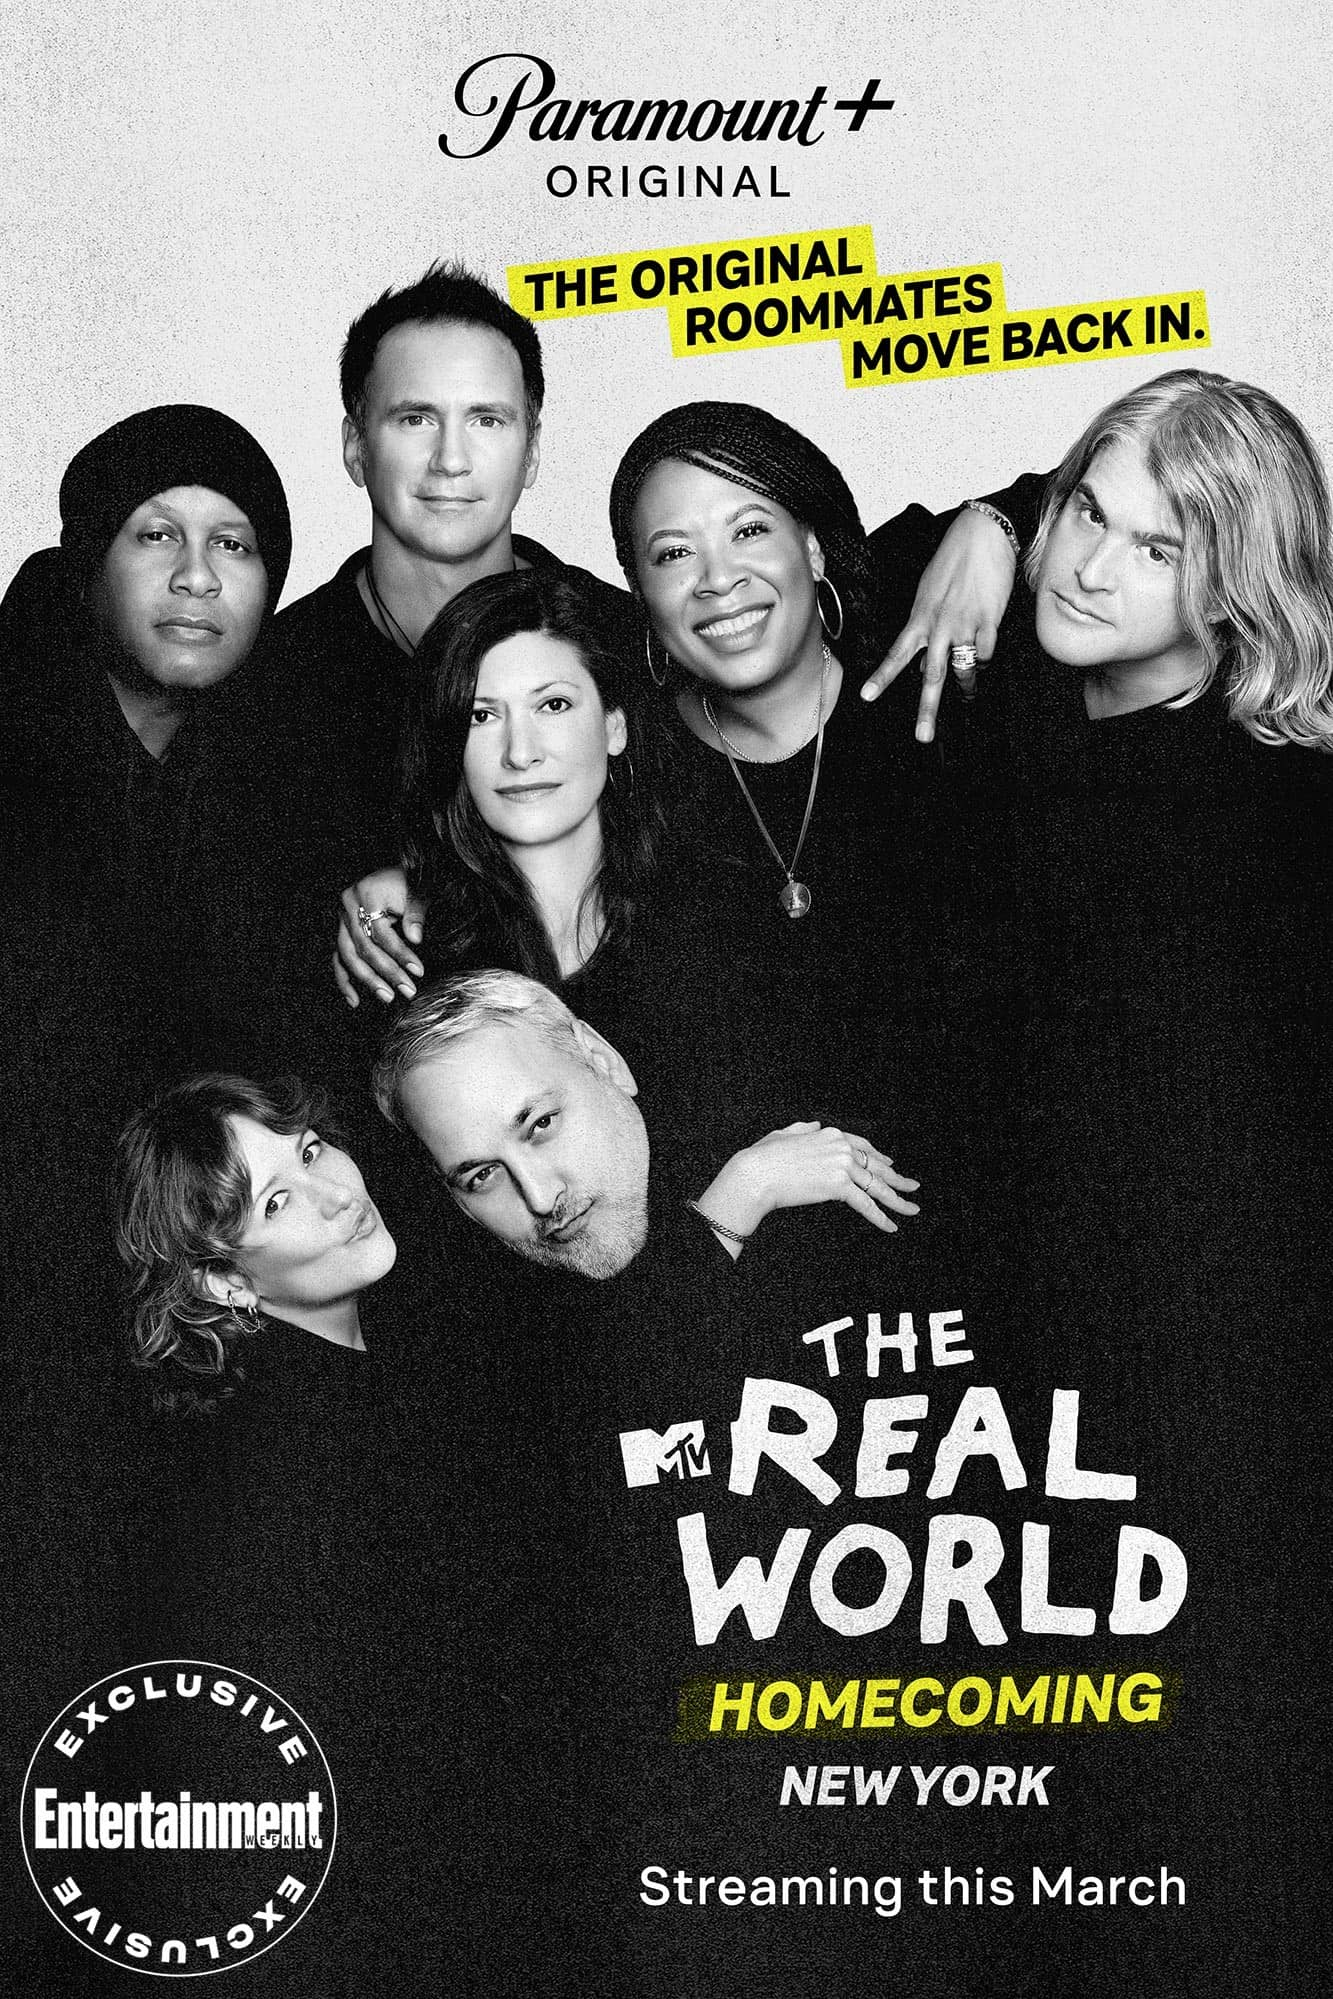 The Real World on Paramount +